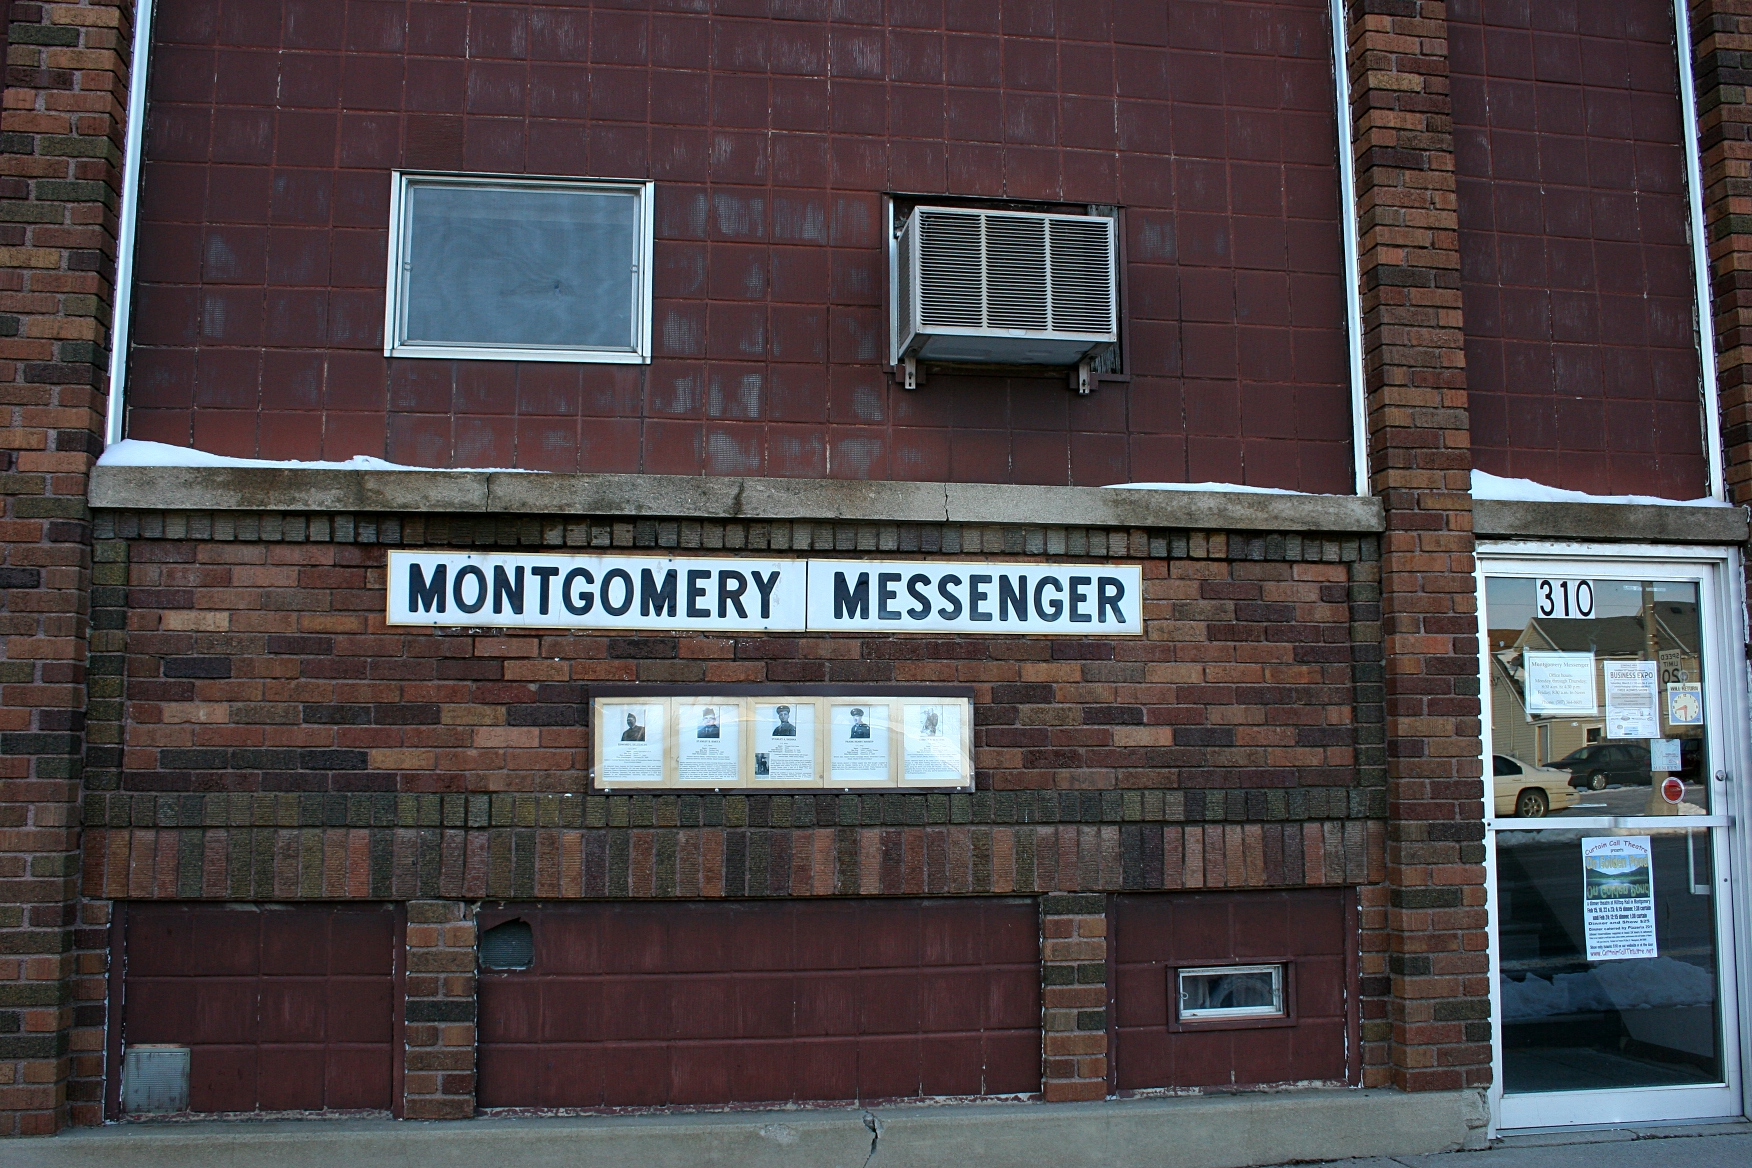 Several vets' photos hang on the exterior of the local newspaper office, The Montgomery Messenger.